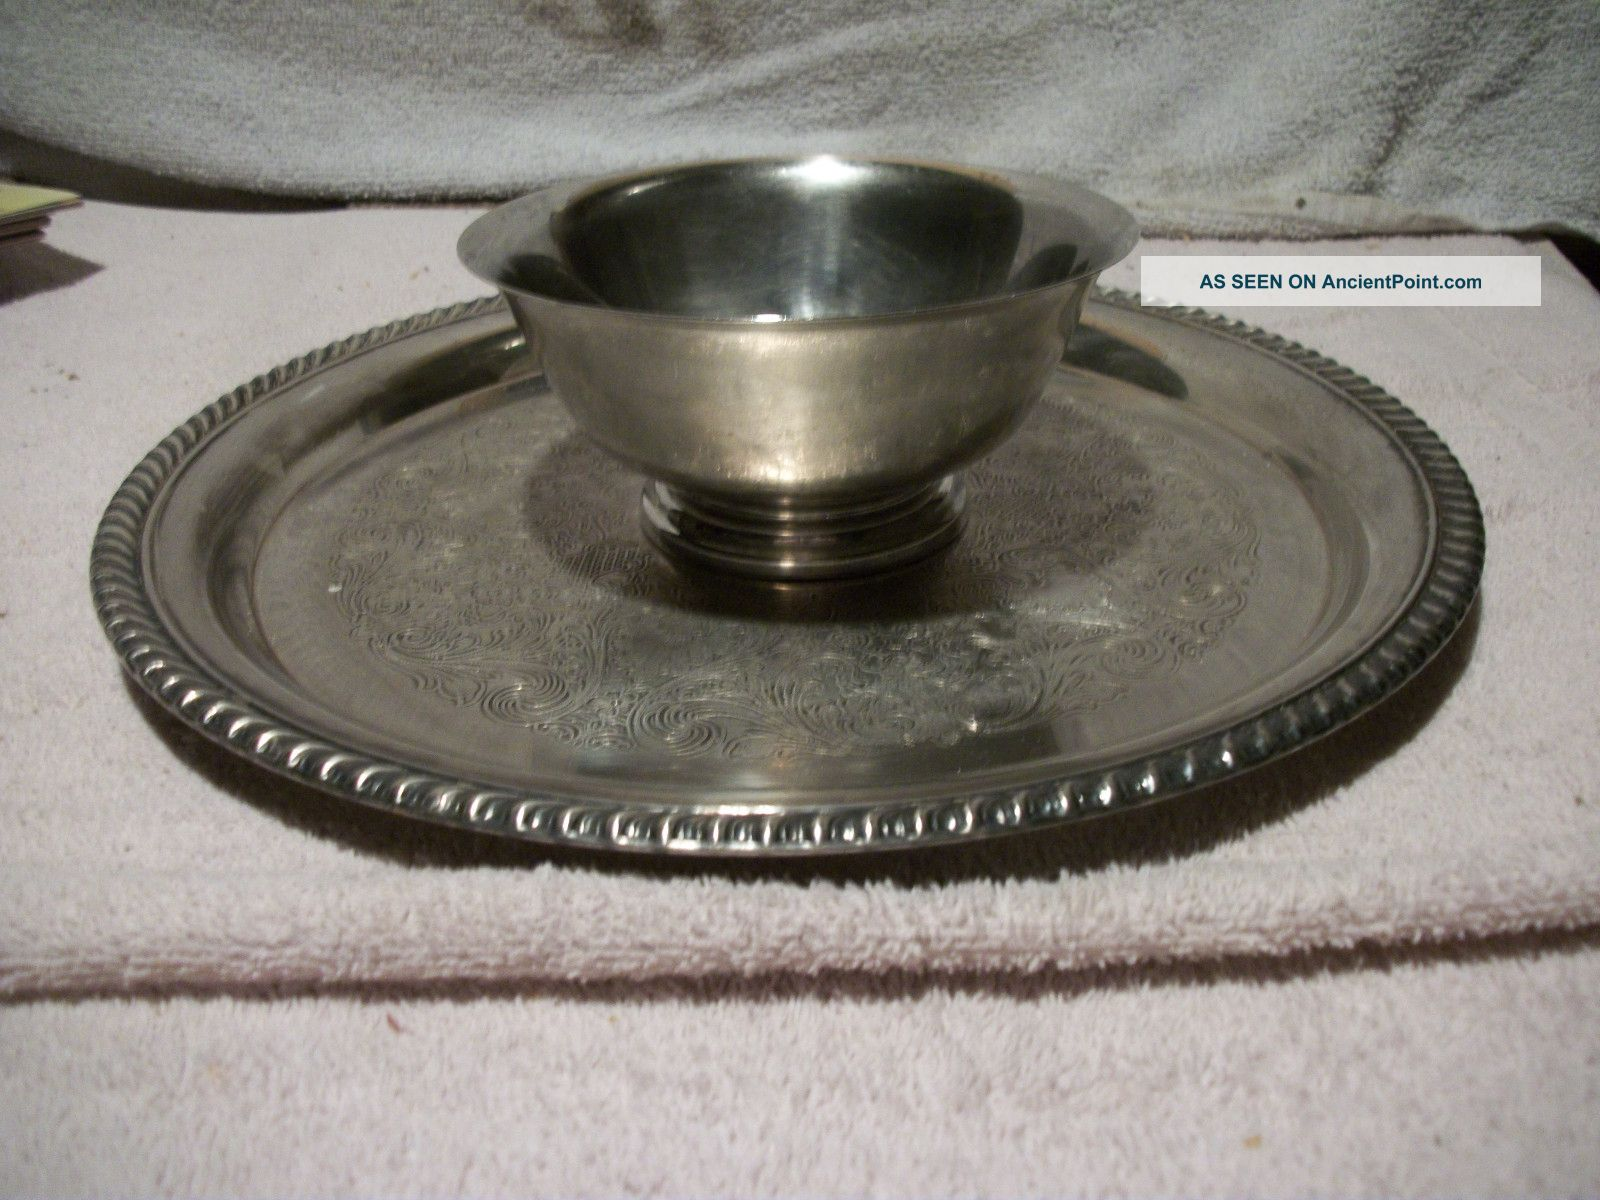 Vintage Paul Revere Reproduction Wm.  A.  Rogers Silverplate Bowl & Round Tray Creamers & Sugar Bowls photo